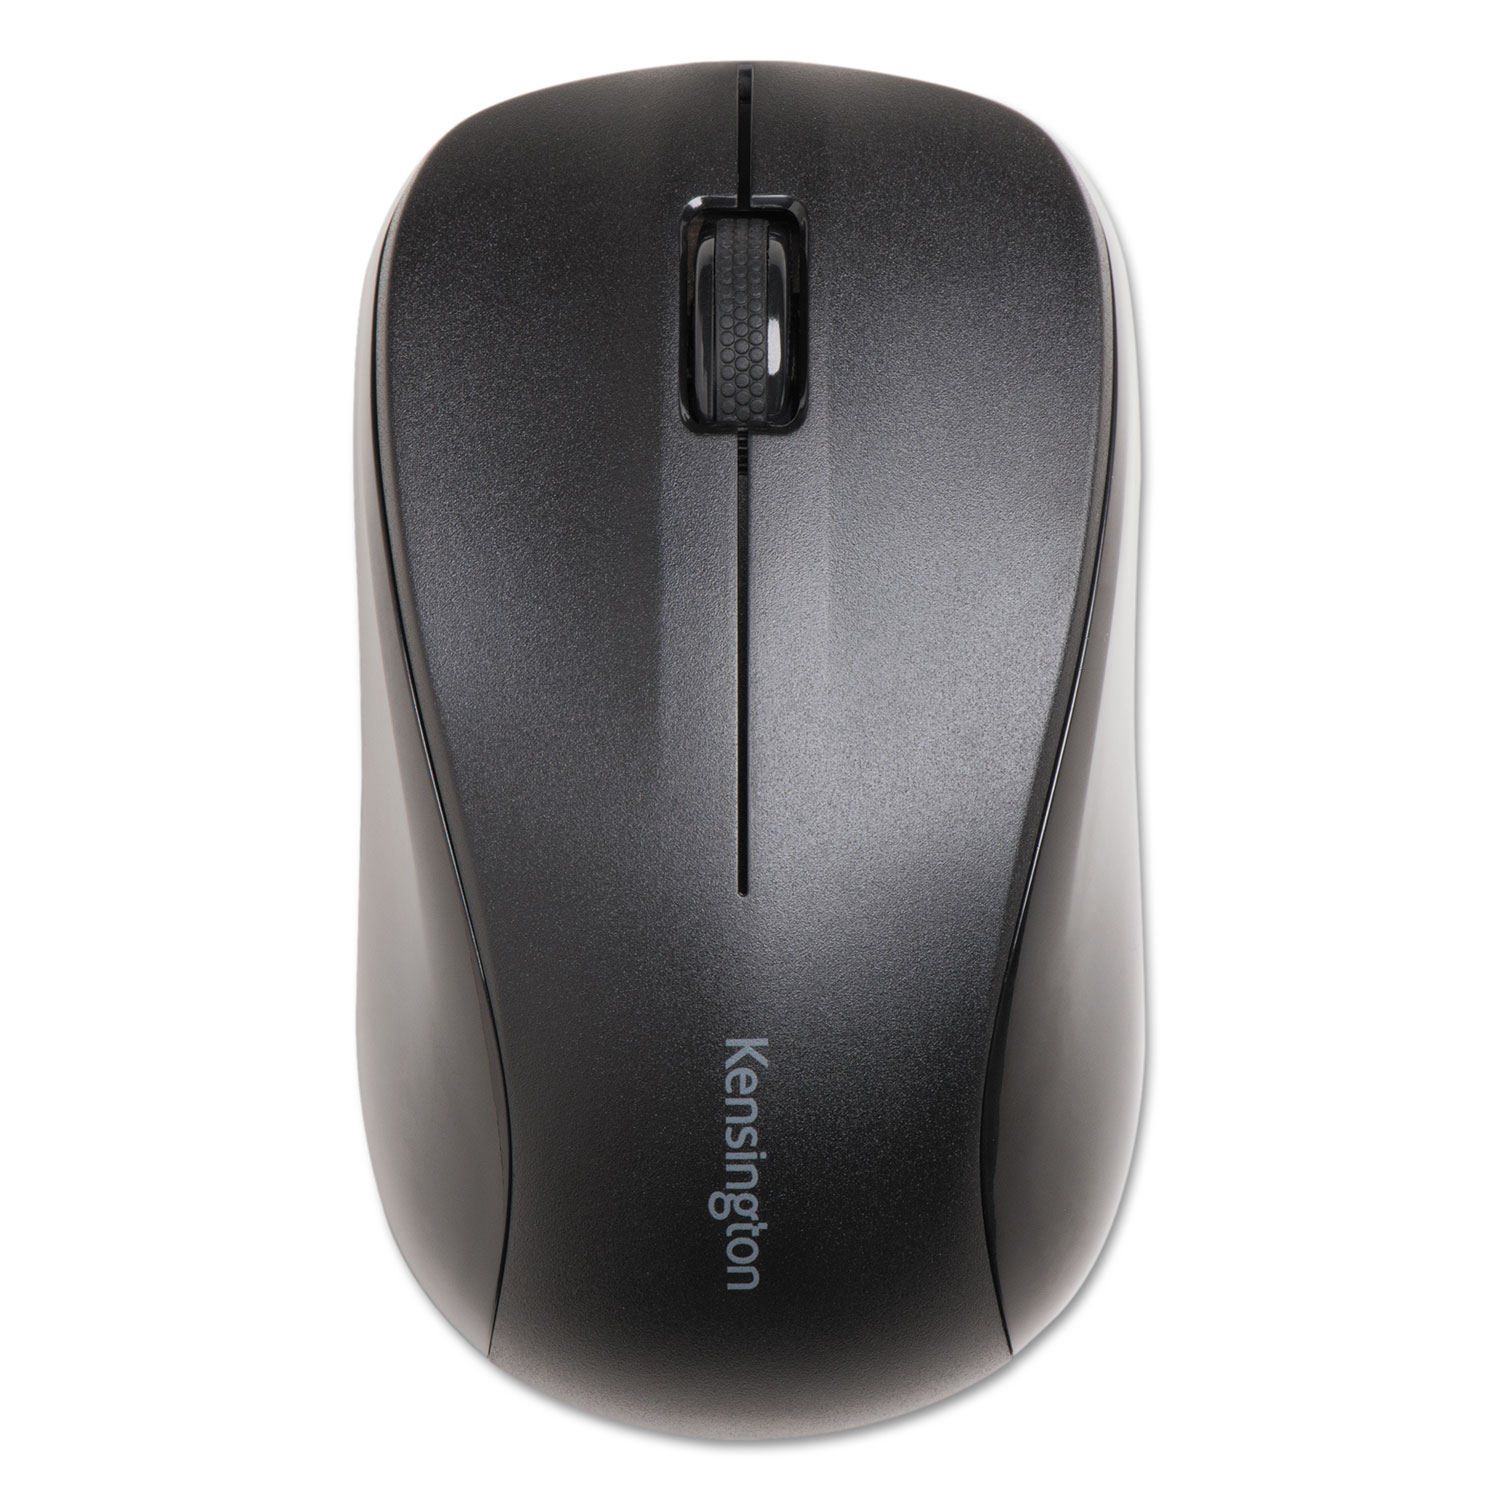 Wireless Mouse for Life, 2.4 GHz Frequency/30 ft Wireless Range, Left/Right Hand Use, Black